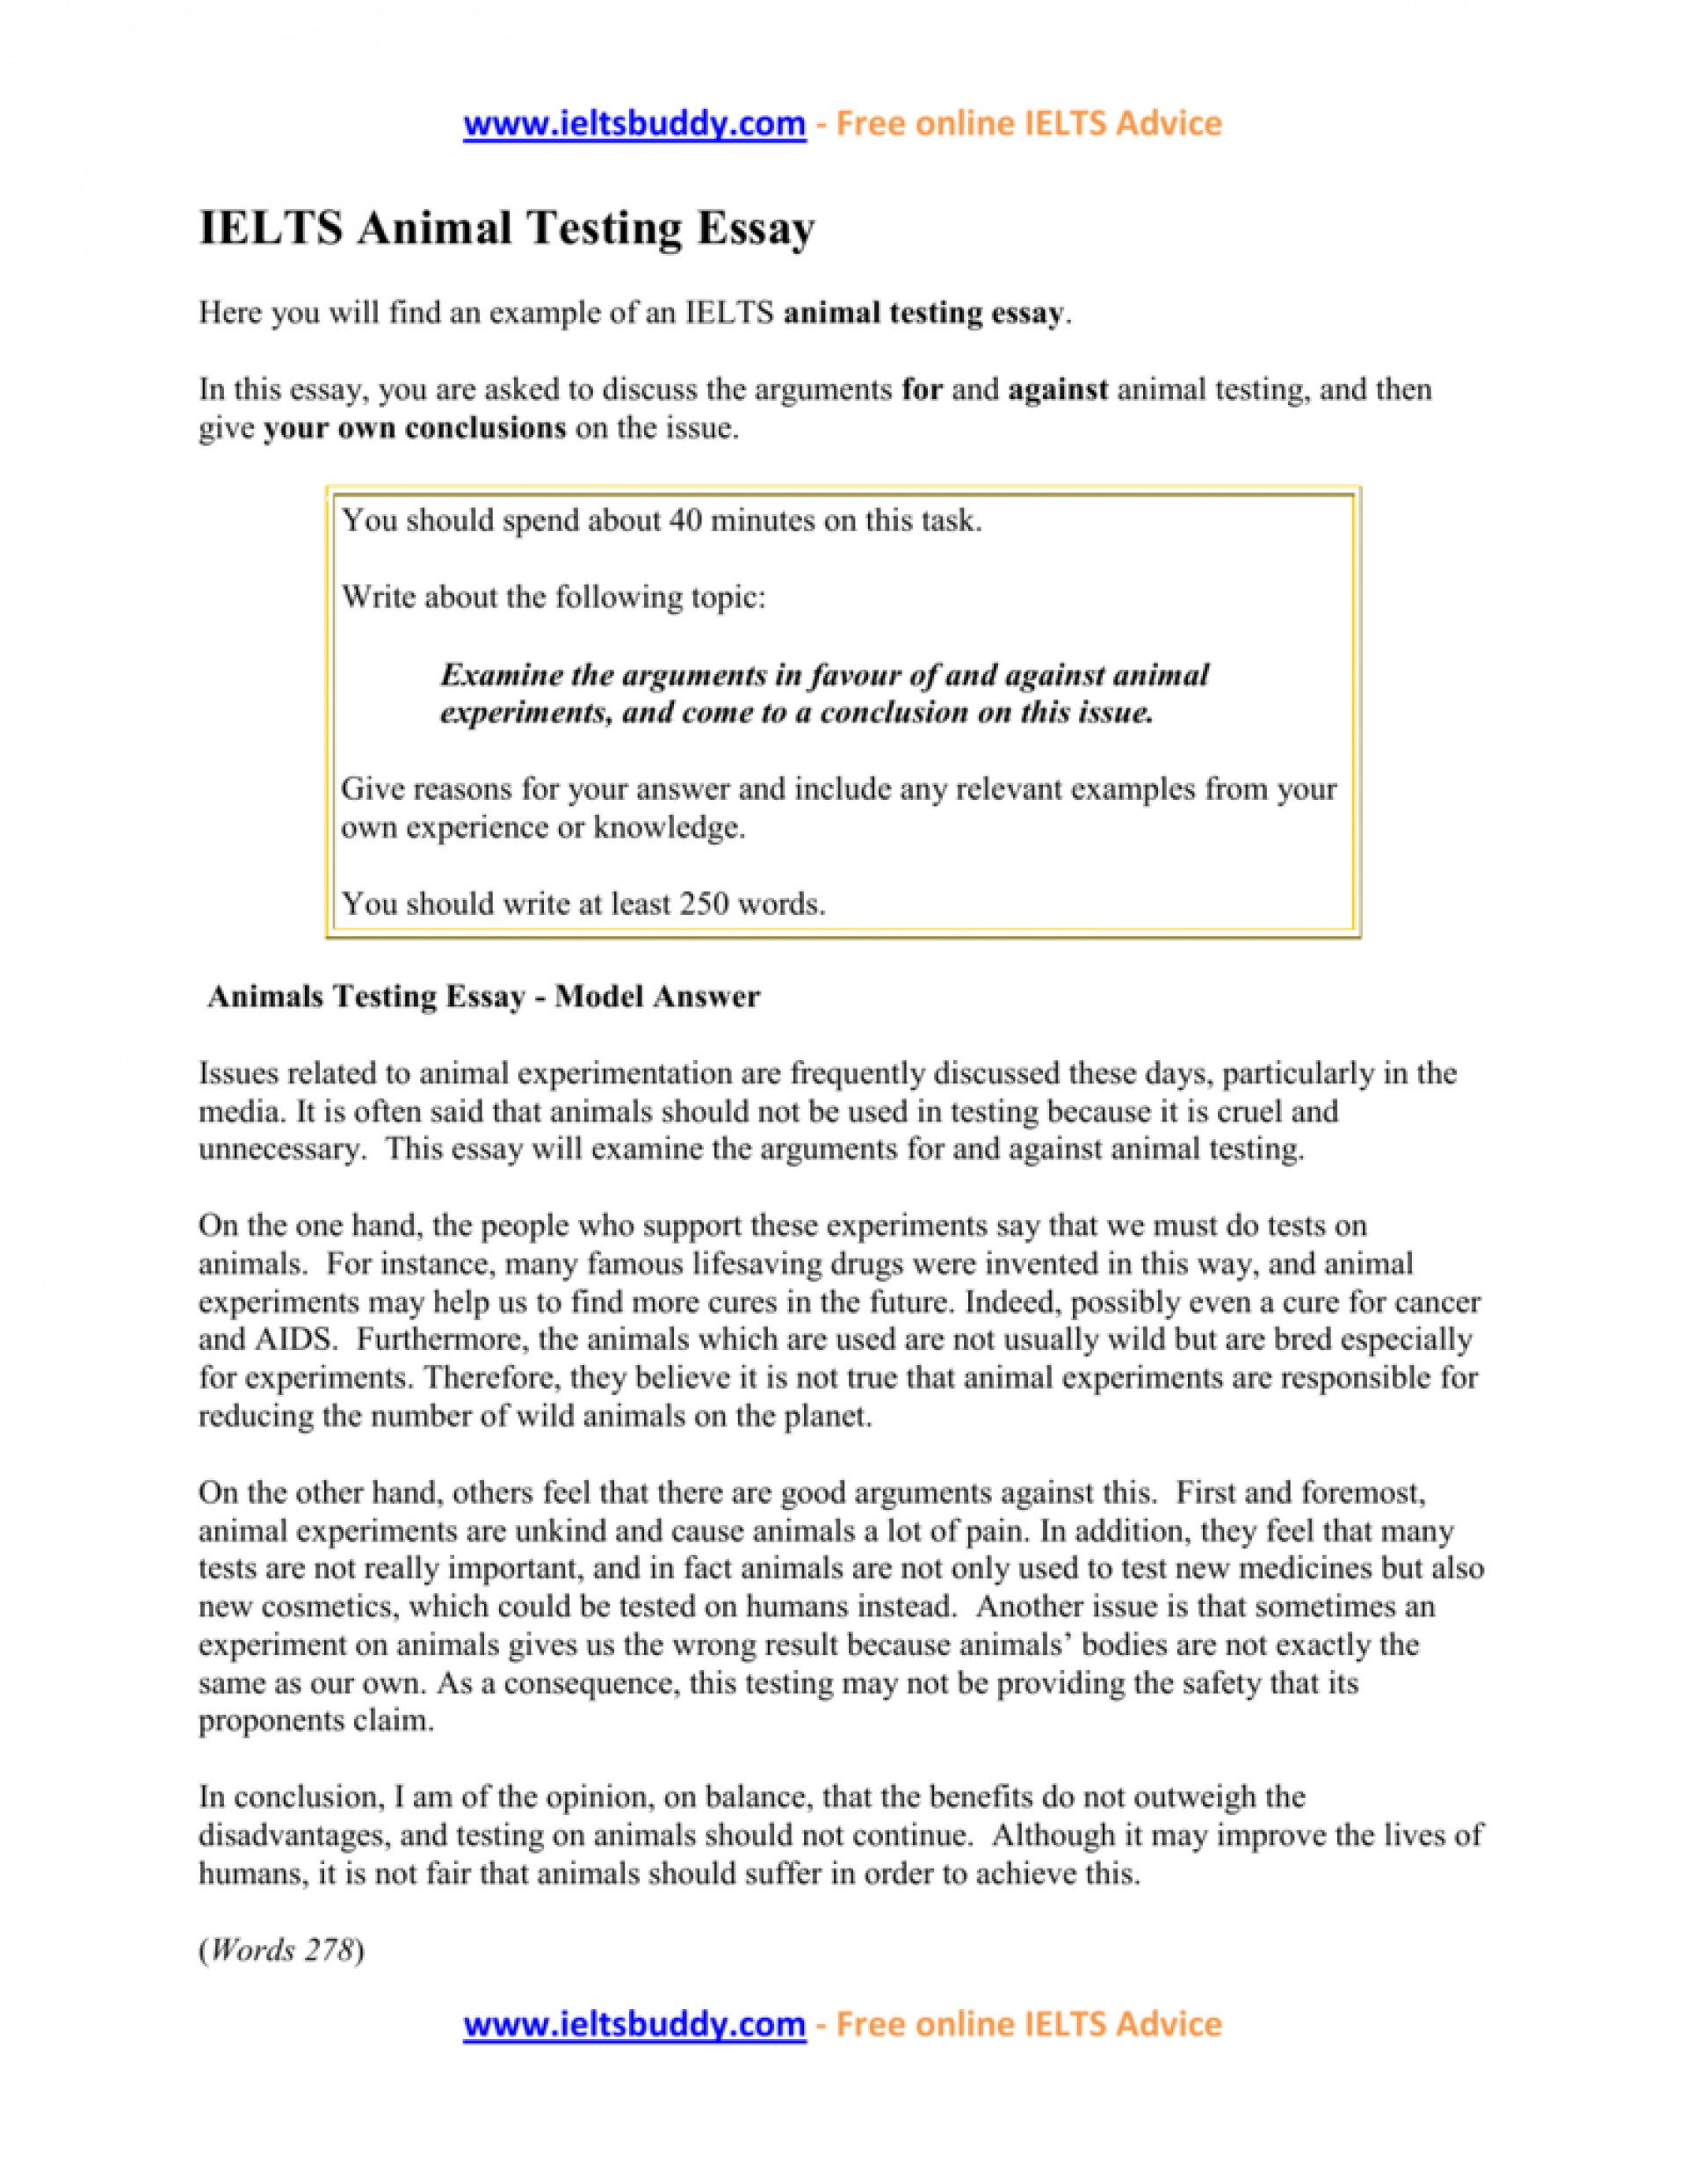 003 Against Animal Testing Essay Example 008917896 1 Imposing Introduction Persuasive Titles 1920